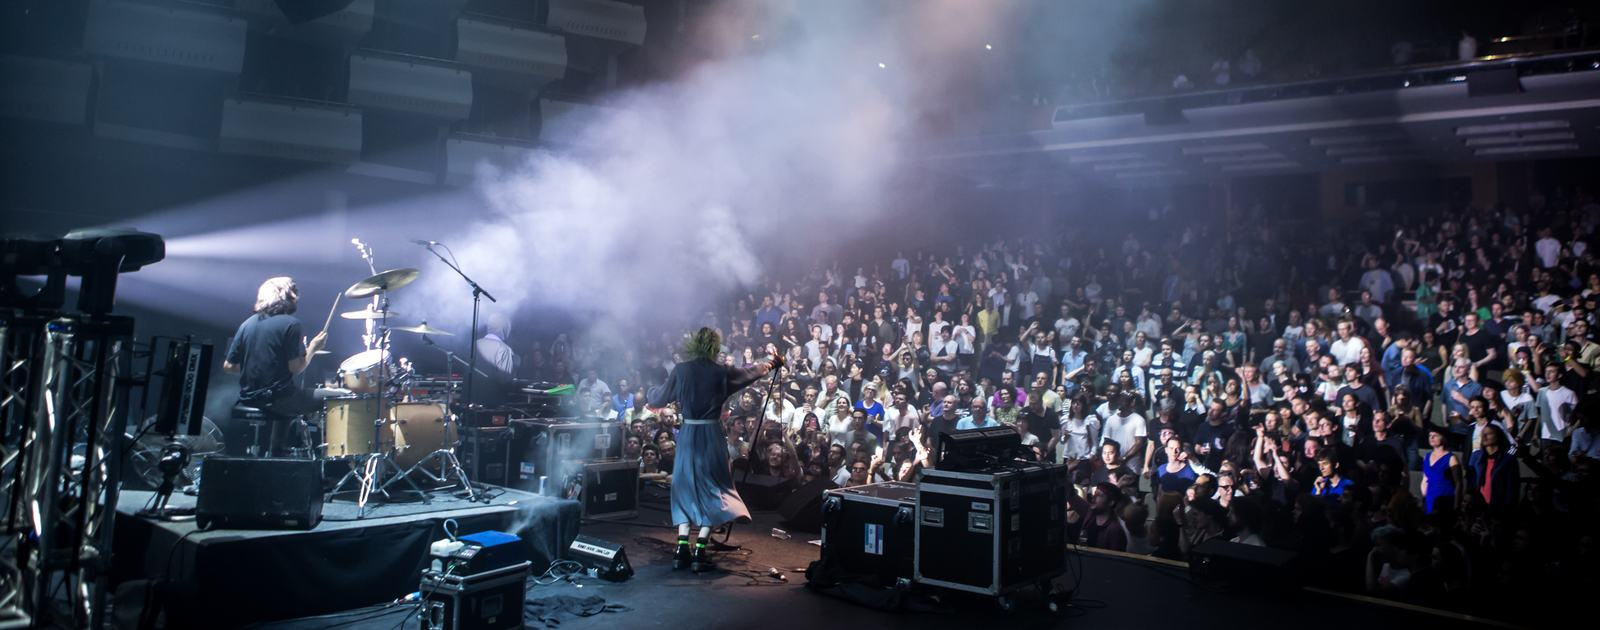 Get set for live music gigs at Southbank Centre this spring